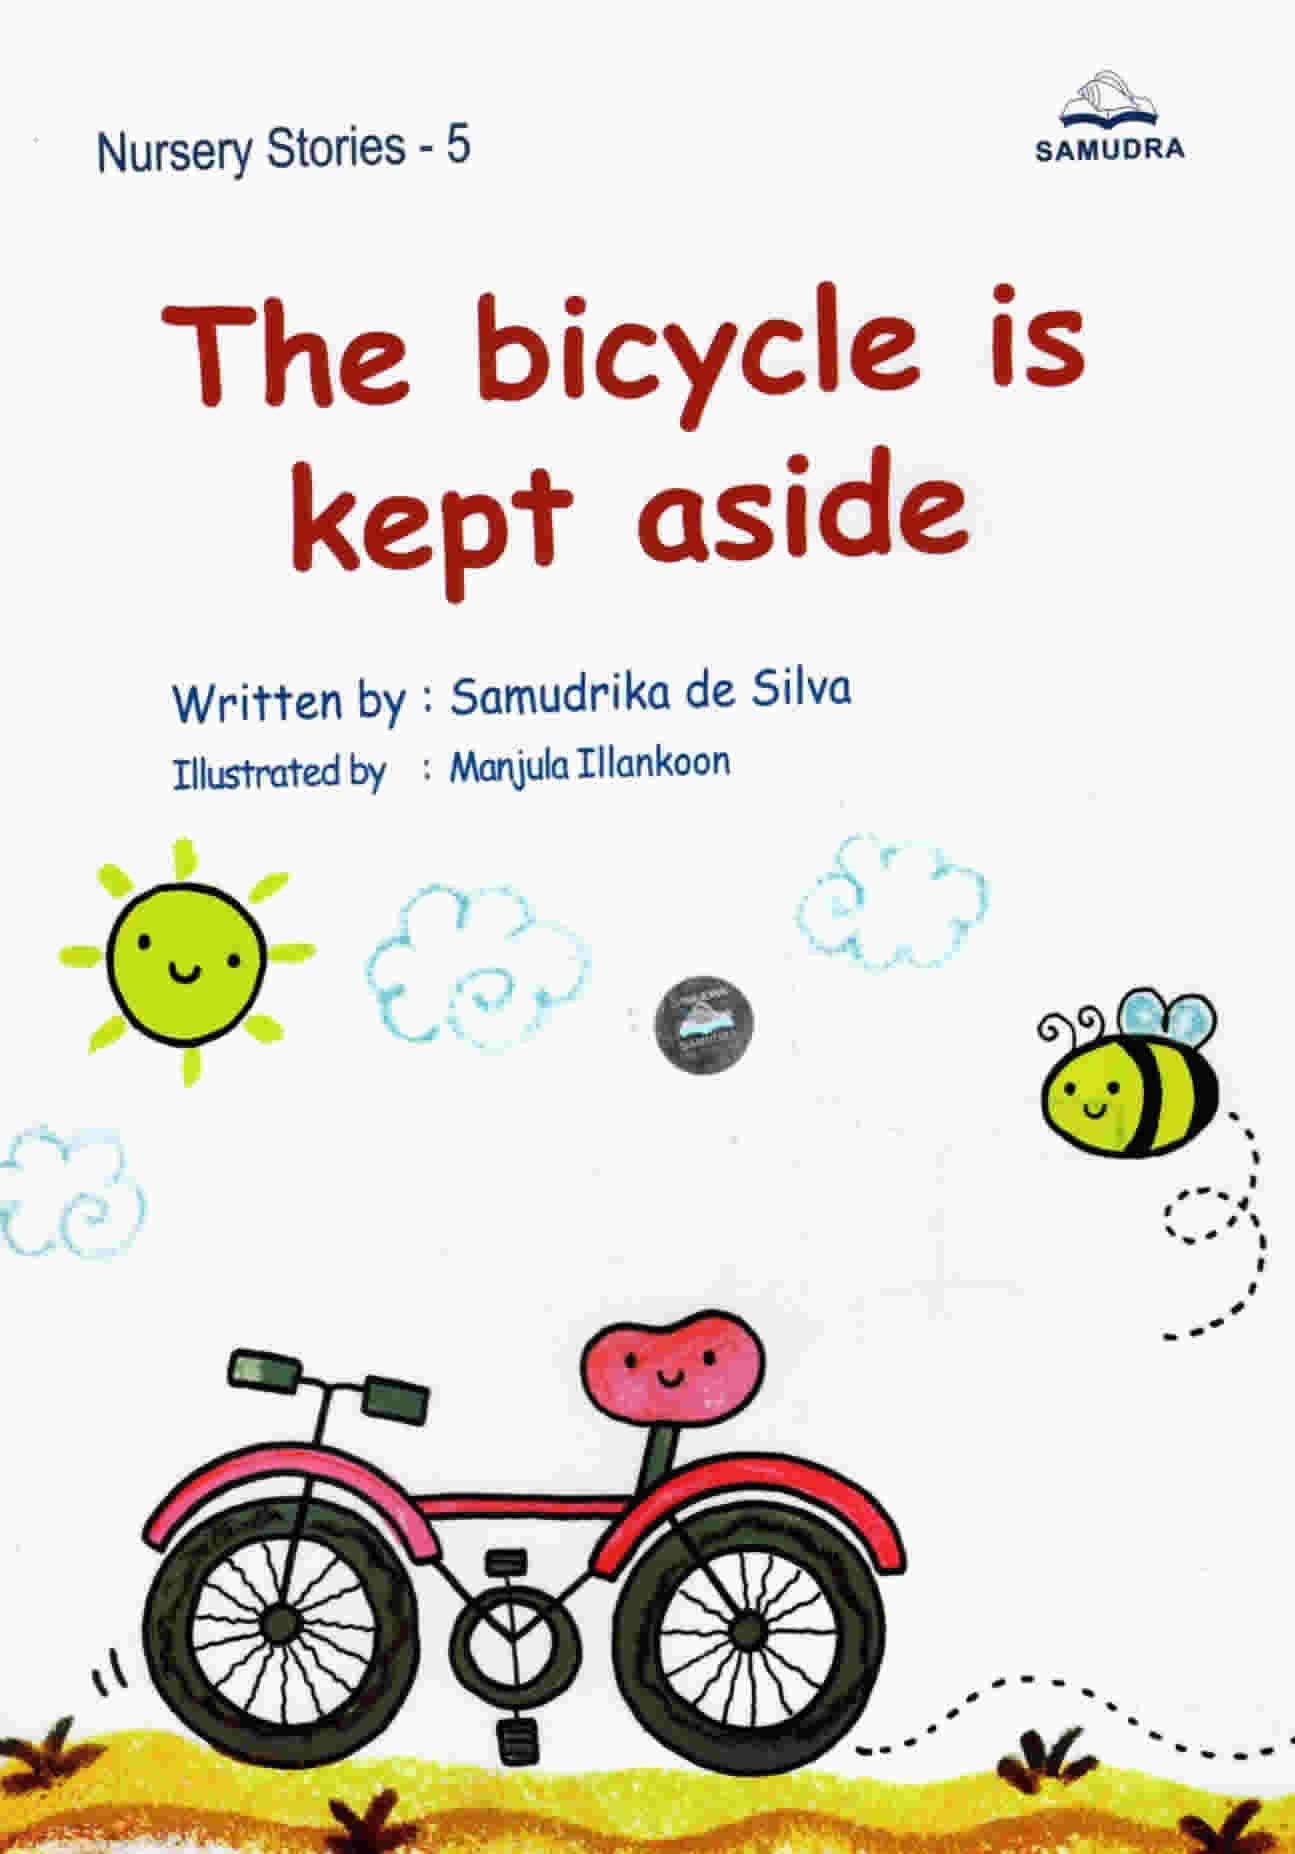 The Bicycle is kept aside